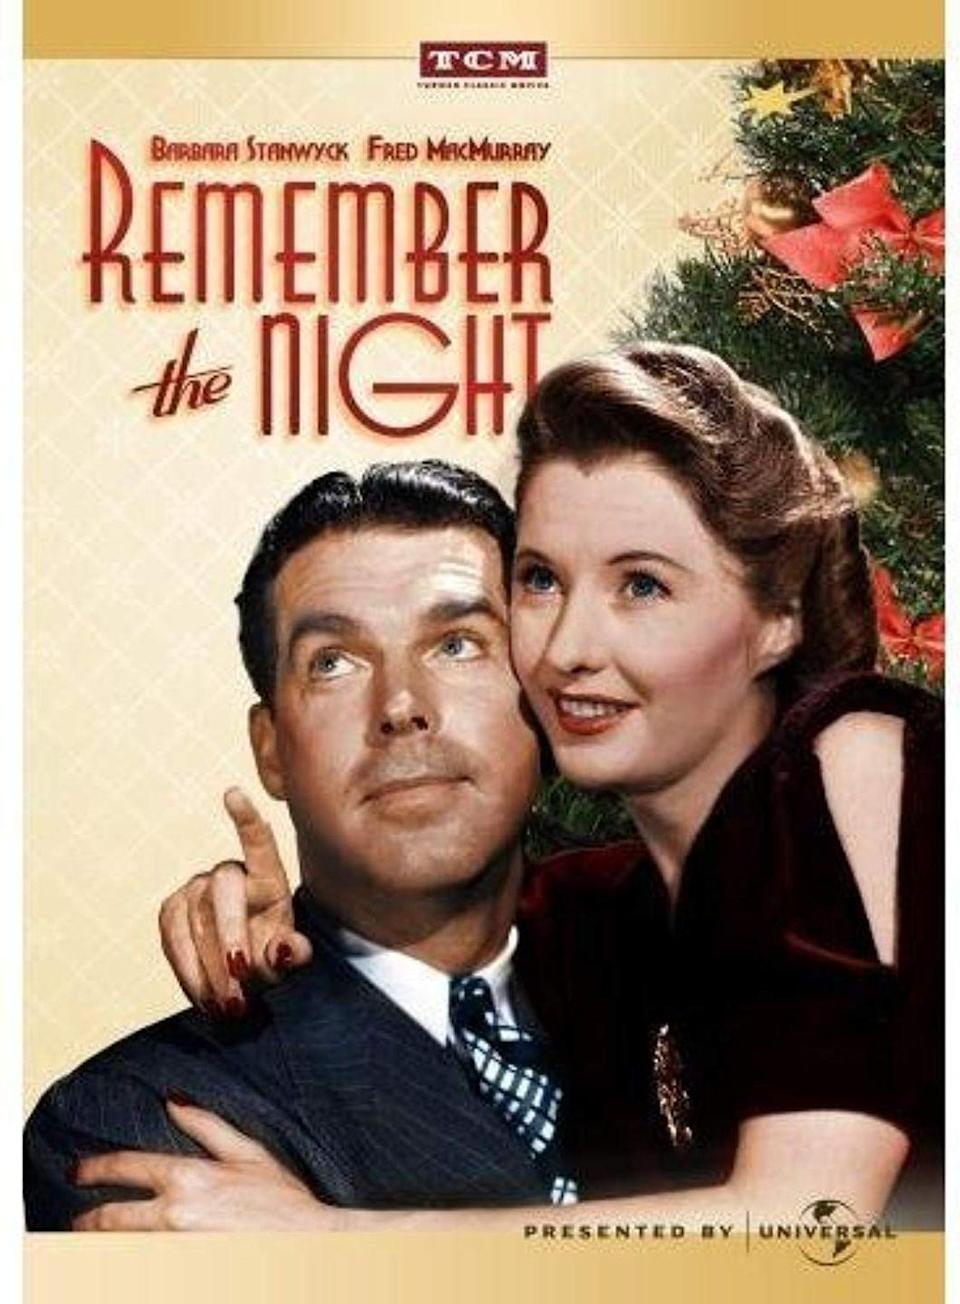 """<p>When Barbara Stanwyck's character gets arrested for shoplifting right before Christmas in this 1940 rom-com, it's up to the D.A. (played by Fred MacMurray) to help her get out of jail.</p><p><a class=""""link rapid-noclick-resp"""" href=""""https://www.amazon.com/Remember-Night-Barbara-Stanwyck/dp/B0047O2FPI/?tag=syn-yahoo-20&ascsubtag=%5Bartid%7C10055.g.1315%5Bsrc%7Cyahoo-us"""" rel=""""nofollow noopener"""" target=""""_blank"""" data-ylk=""""slk:WATCH NOW"""">WATCH NOW</a></p>"""